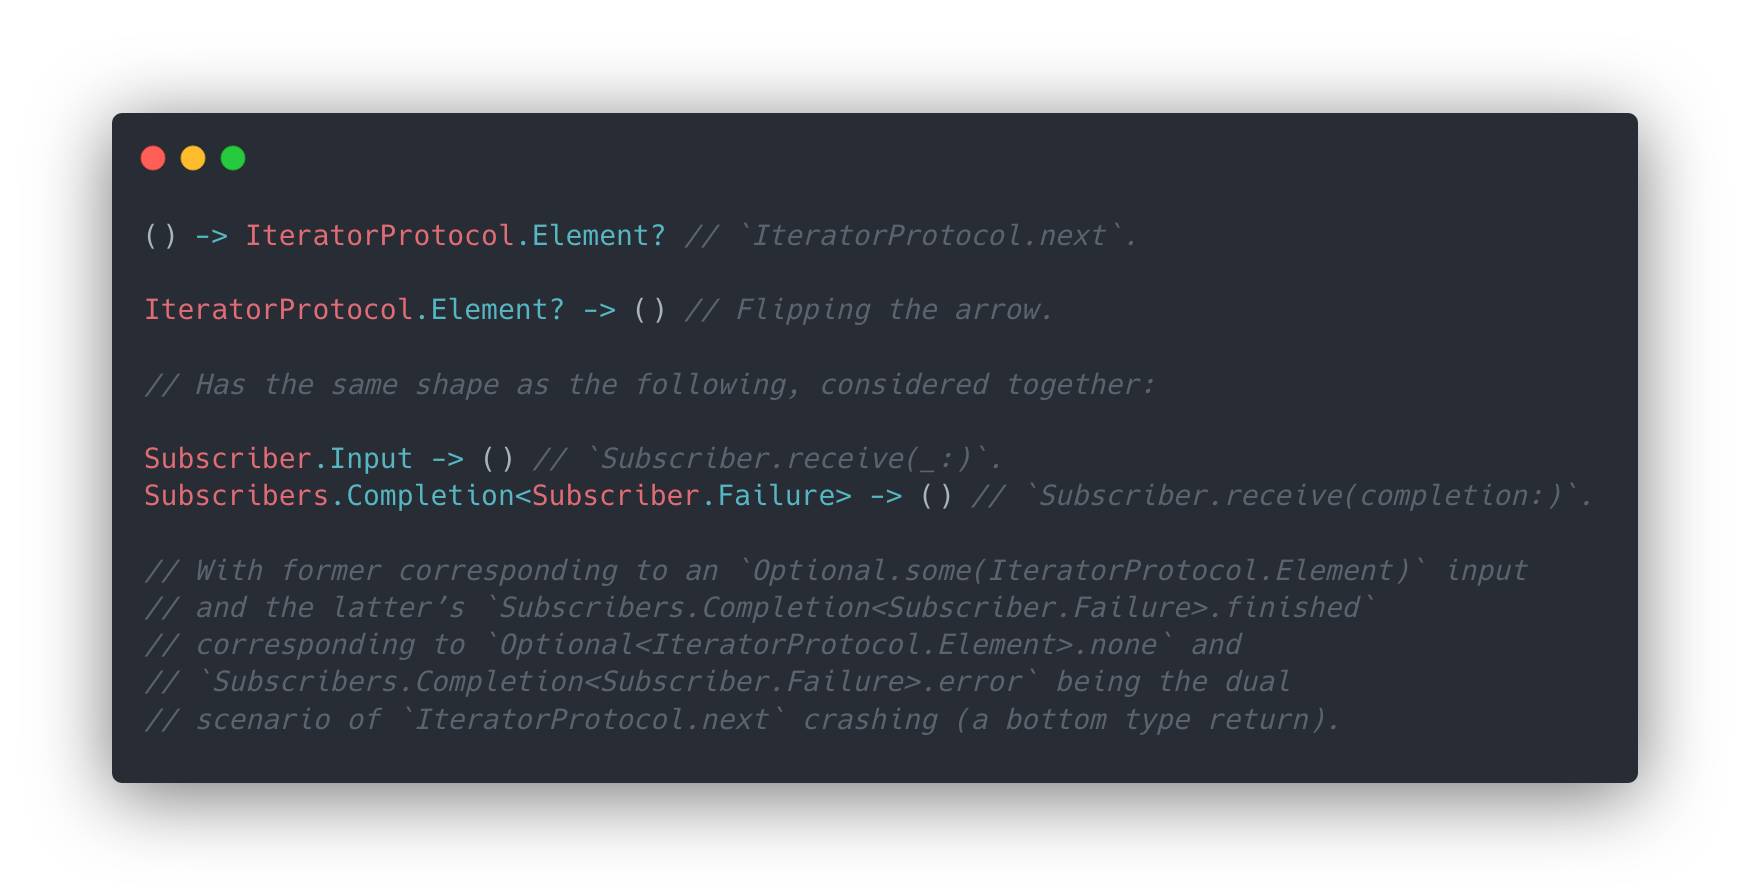 Demonstrating how `Subscriber` is the dual of `IteratorProtocol`.